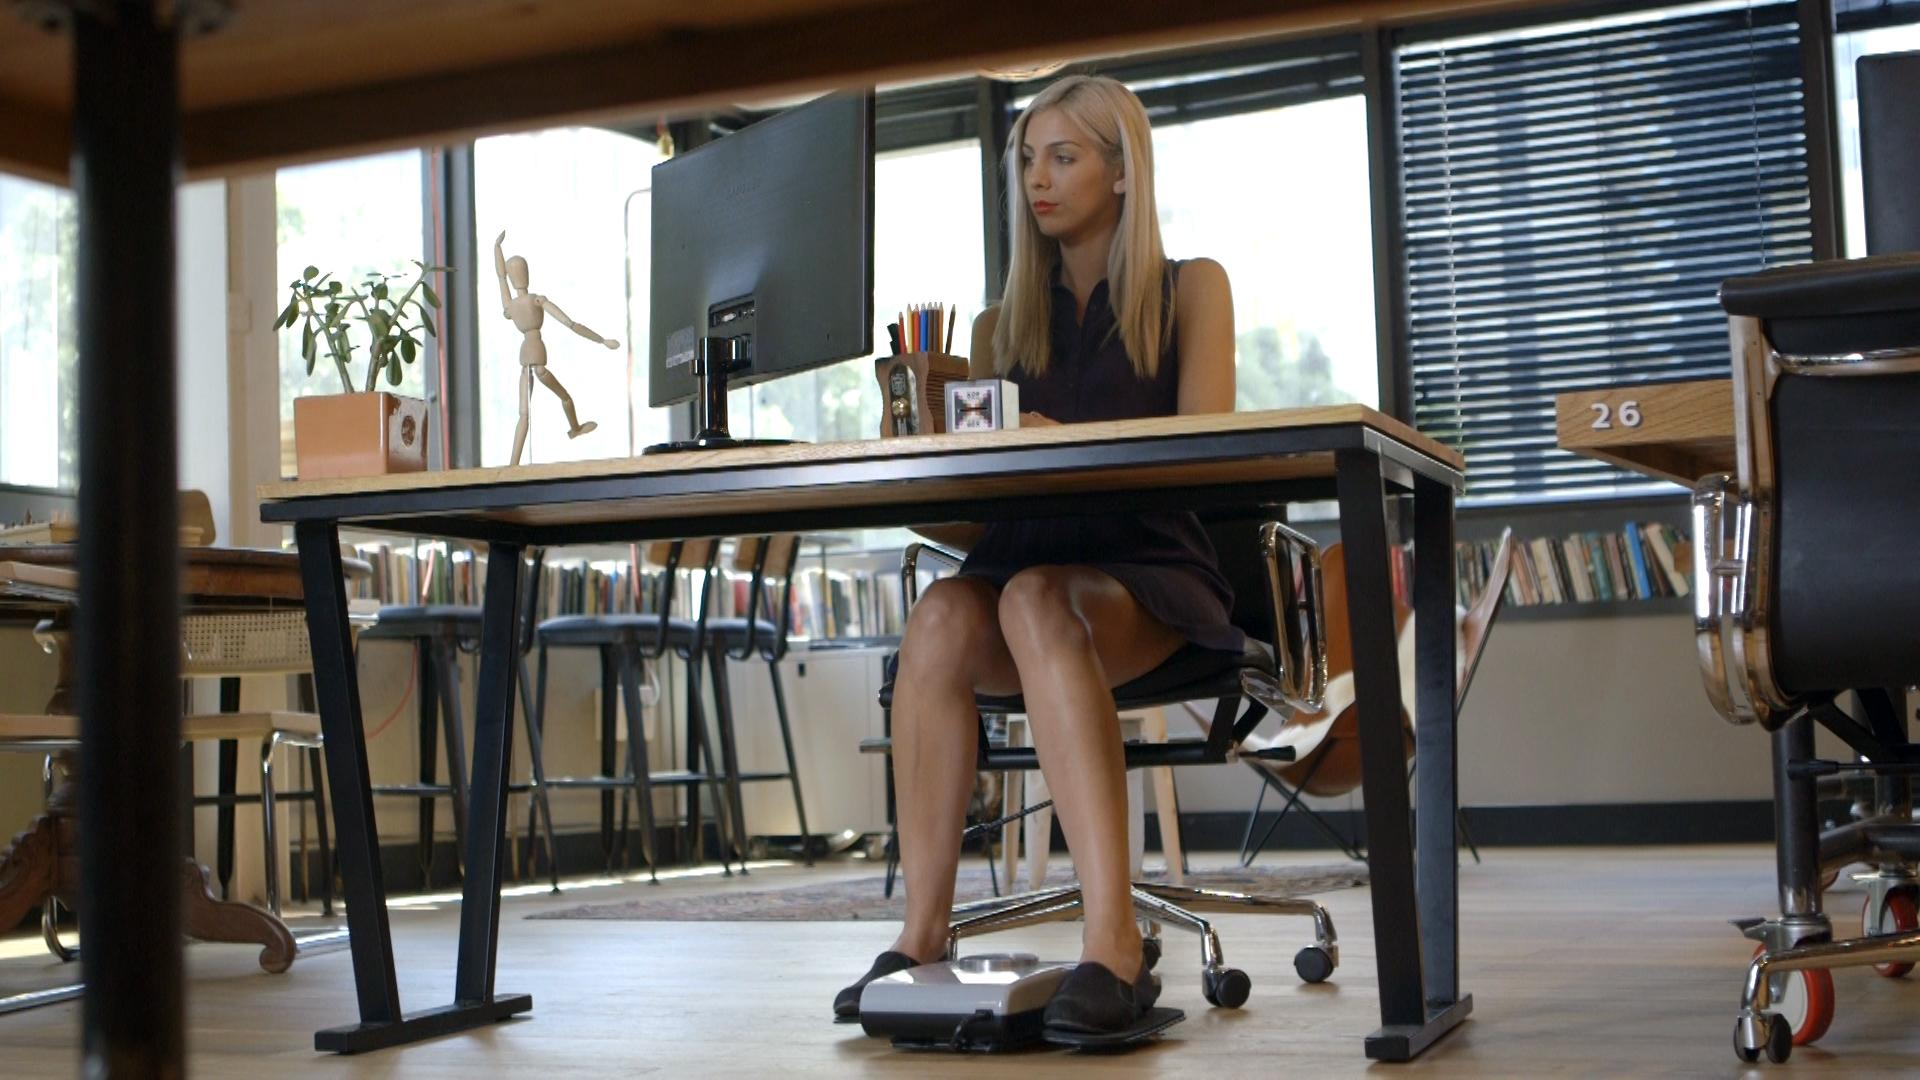 Work Out In Your Workspace With The Glyder Digital Trends